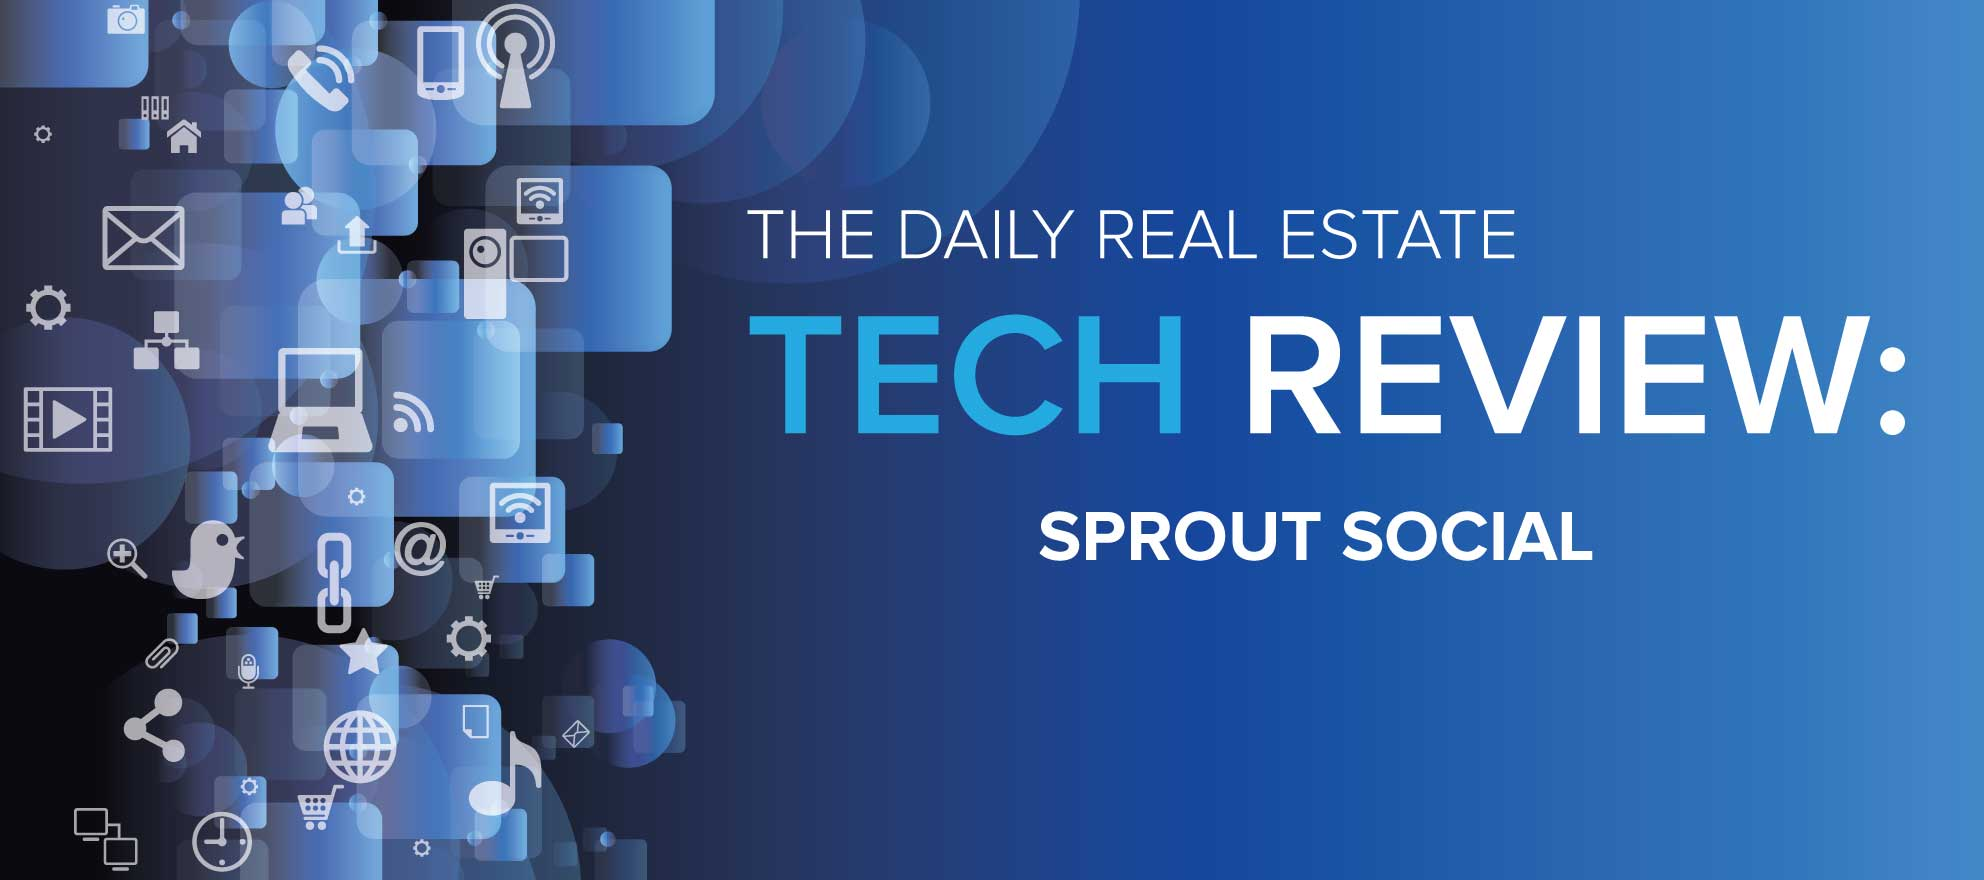 Sprout Social can help agents flourish on social media